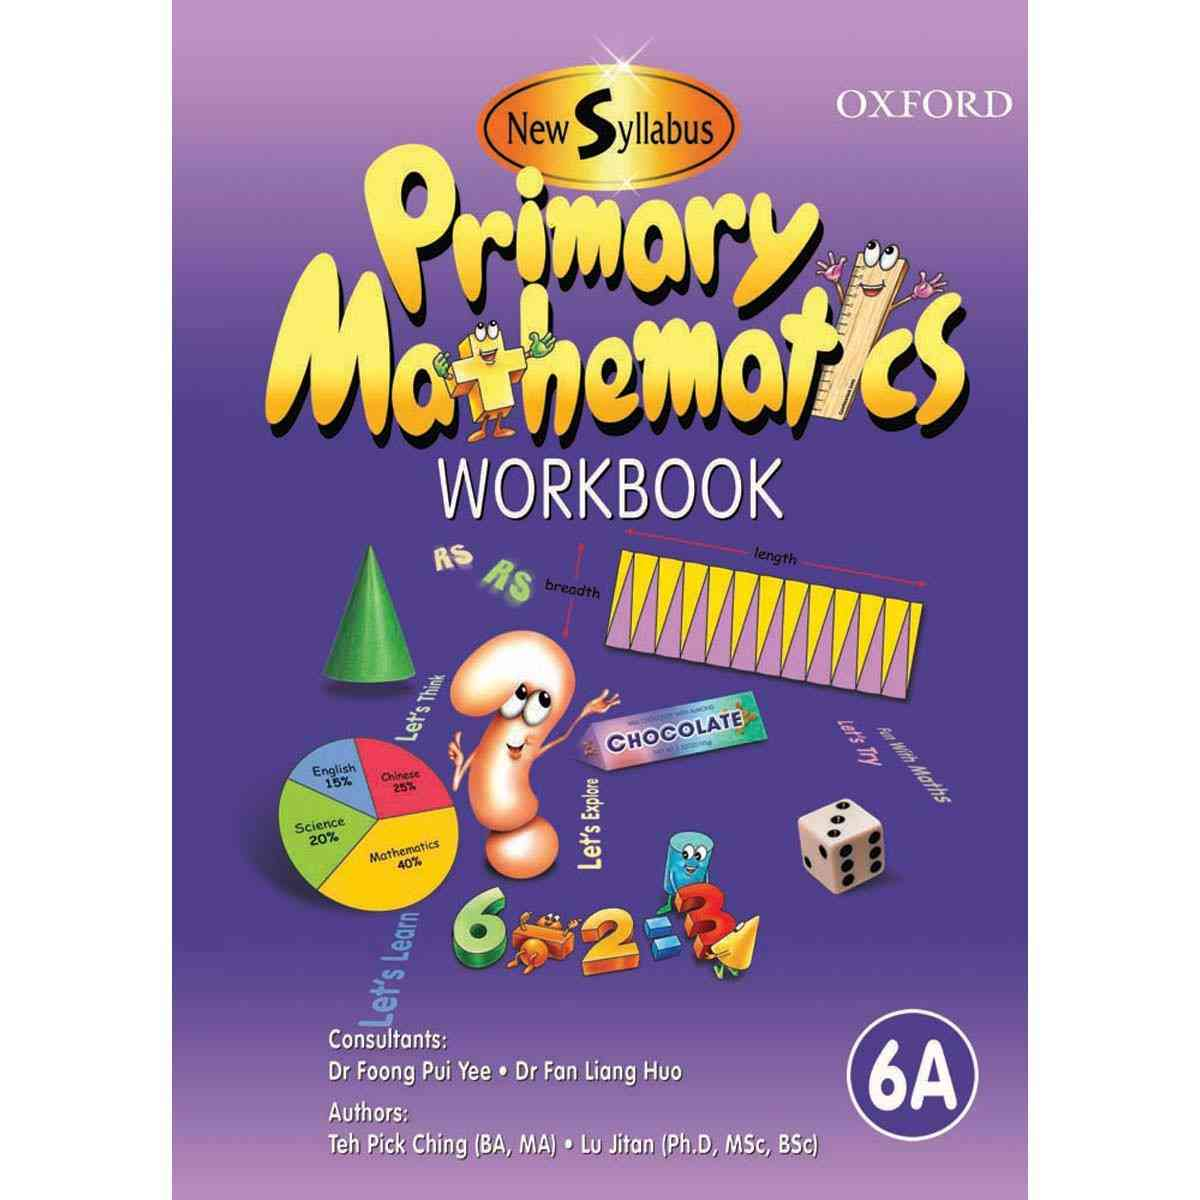 Oxford Books Syllabus Primary Mathematics Workbook